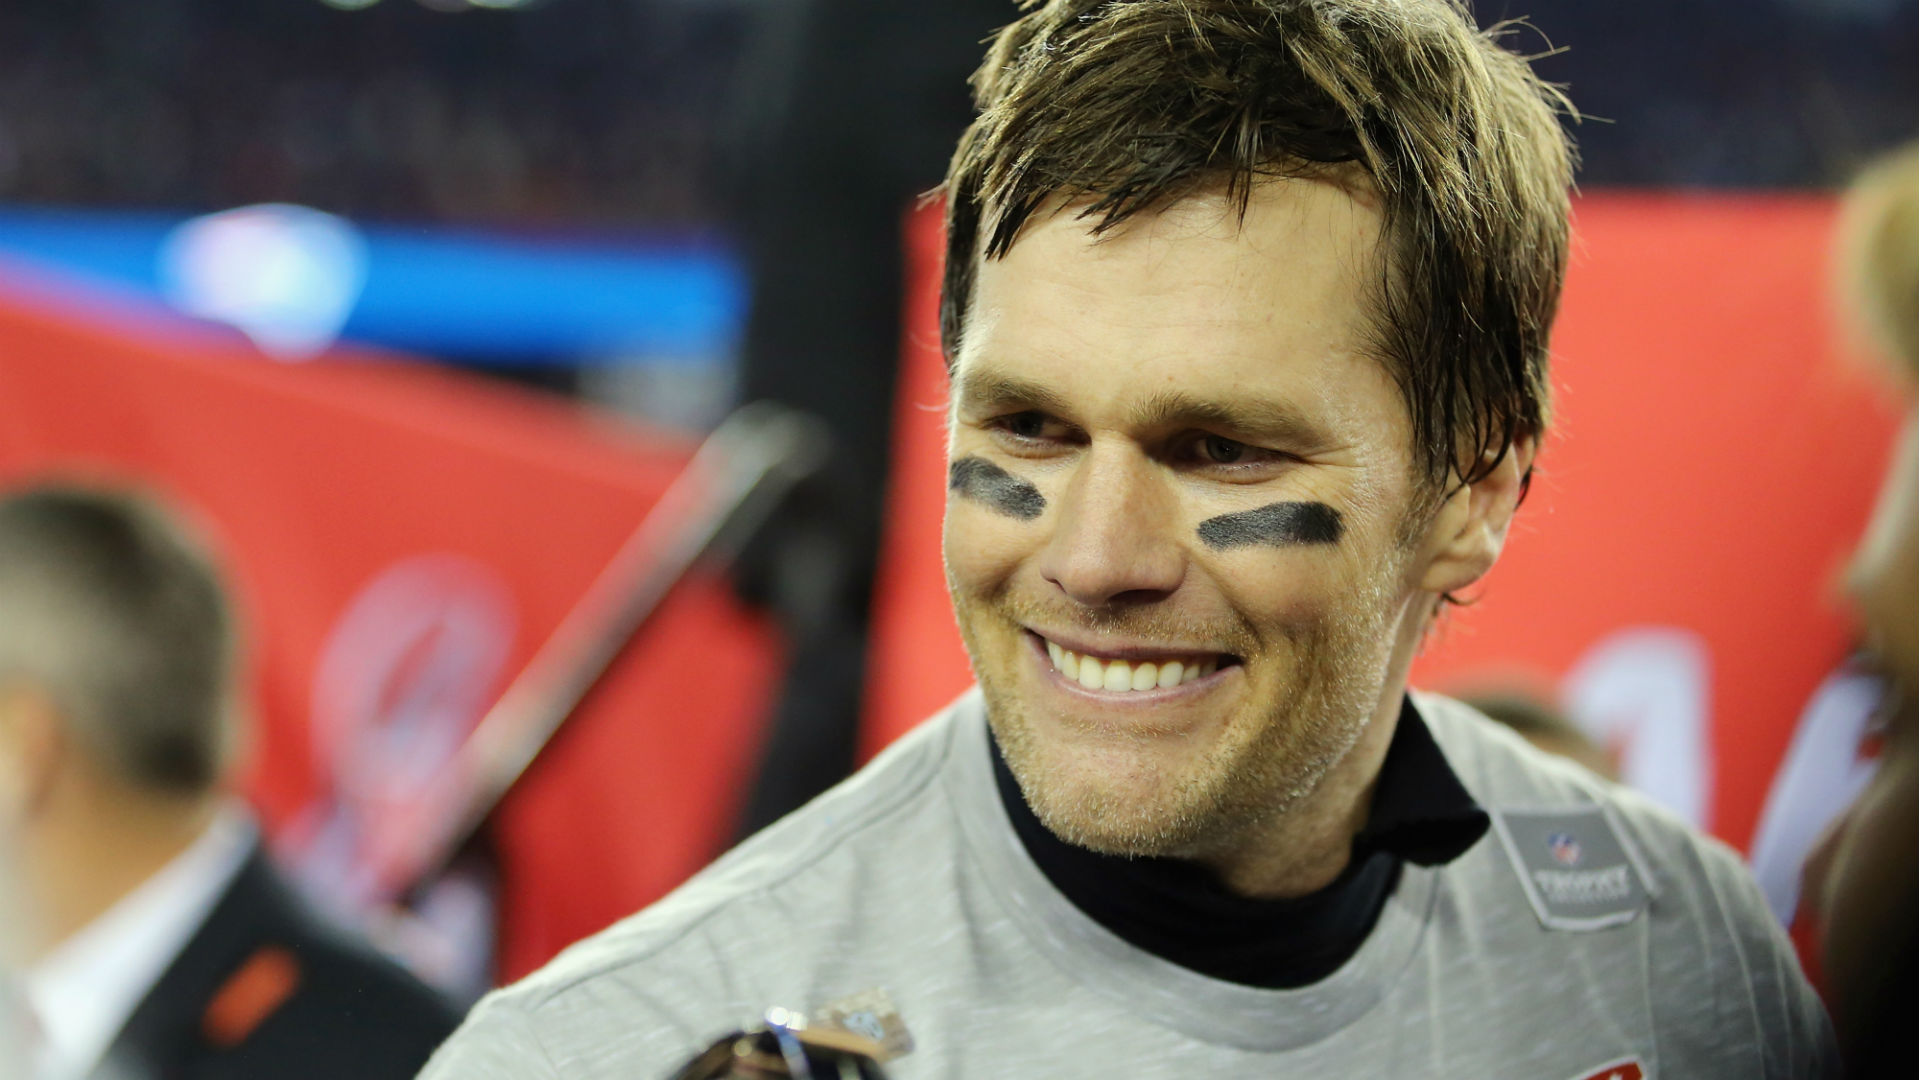 Tom Brady Shares Awkwardly Long Kiss With His 11-Year-Old Son